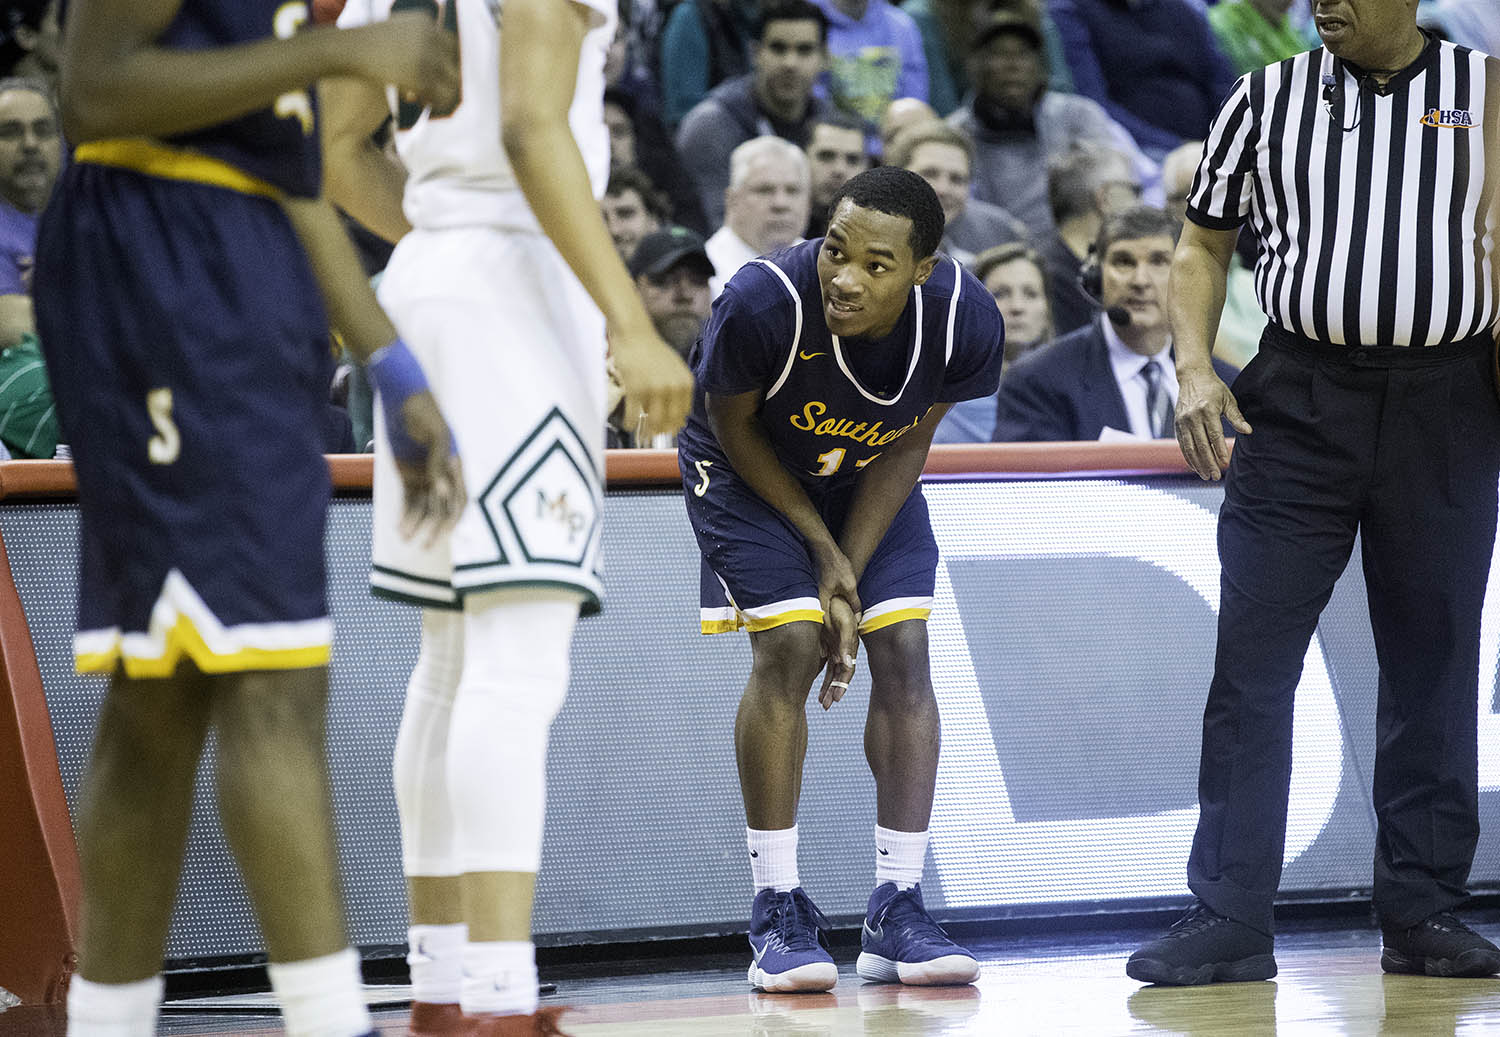 Southeast's Kobe Medley holds his hand after injuring it against Morgan Park  during the 3A championship game at Carver Arena in Peoria, Ill., Saturday, March 17, 2018. [Ted Schurter/The State Journal-Register]